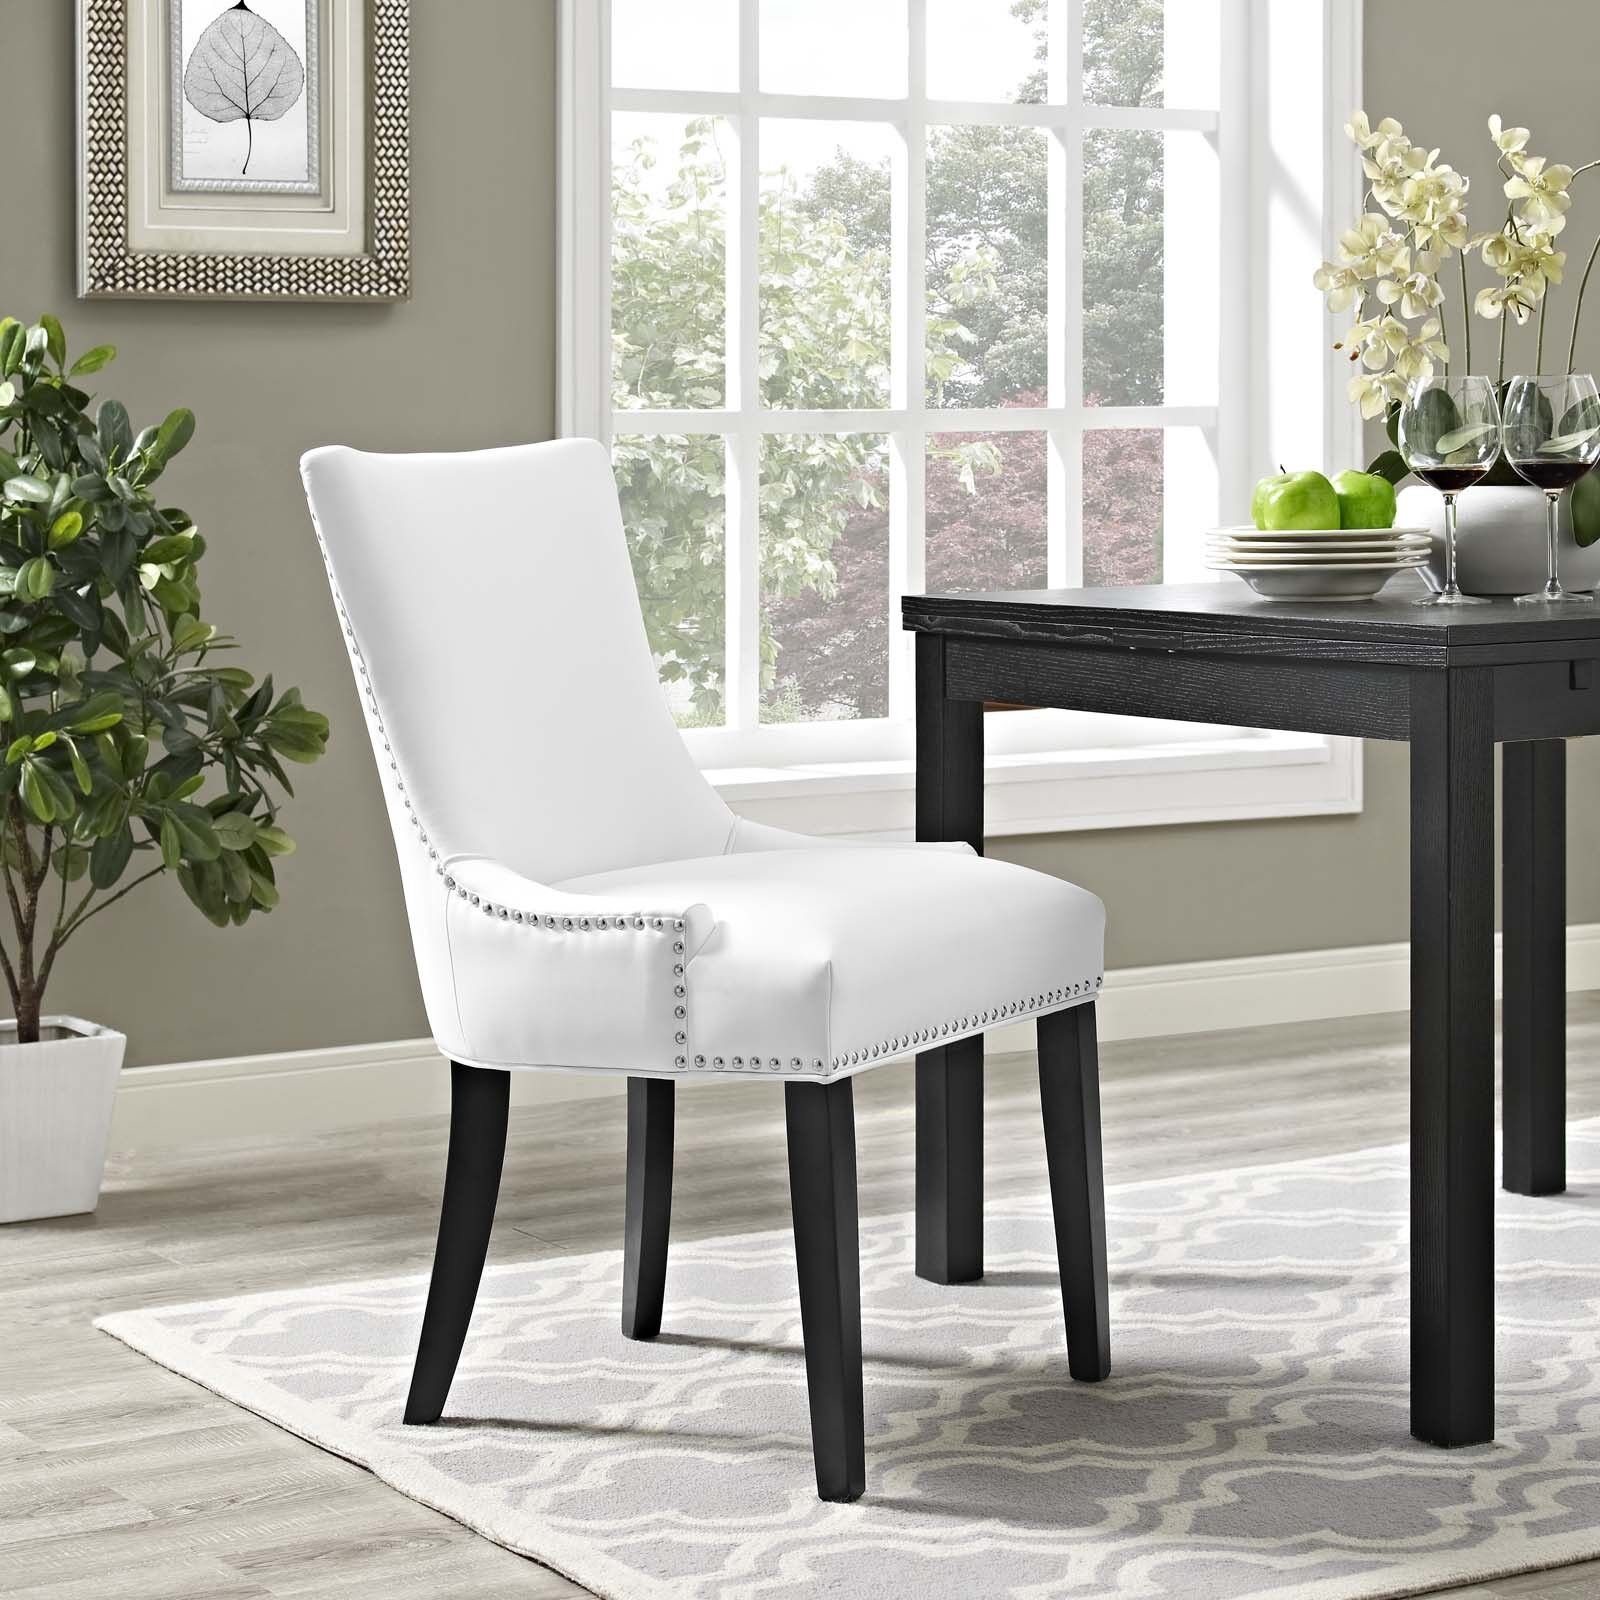 Details About Faux Leather Upholstered Nailhead Trim Parsons Dining Side Chair In White